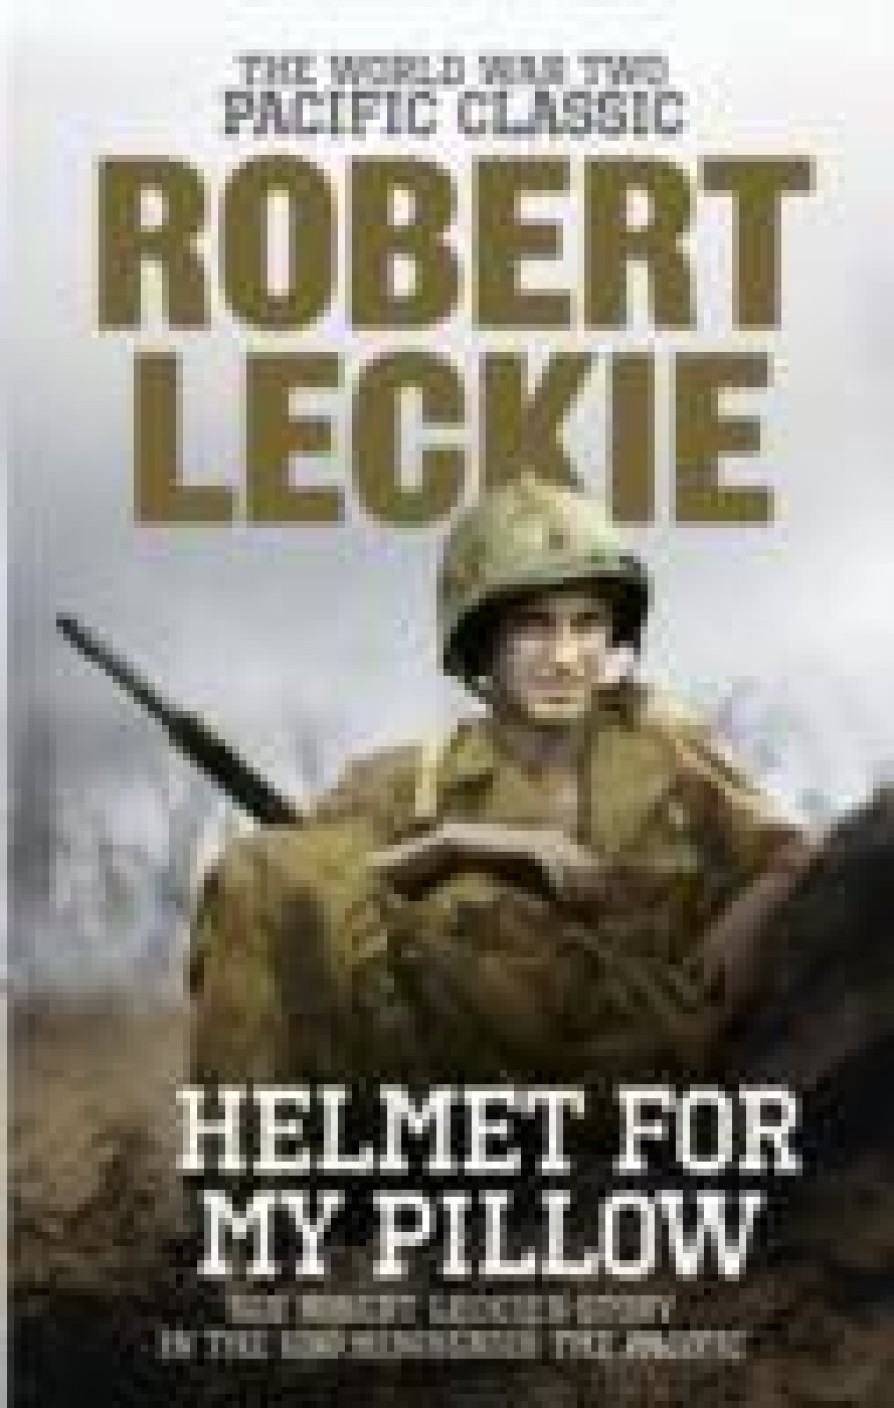 war helmet for my pillow Helmet for my pillow: from parris island to the pacific, by robert leckie in this riveting autobiography , world war ii veteran and us marine robert leckie chronicles his wartime experiences—from basic training at parris island, sc to his deployment and service with the 1st marine division on the war's pacific front.